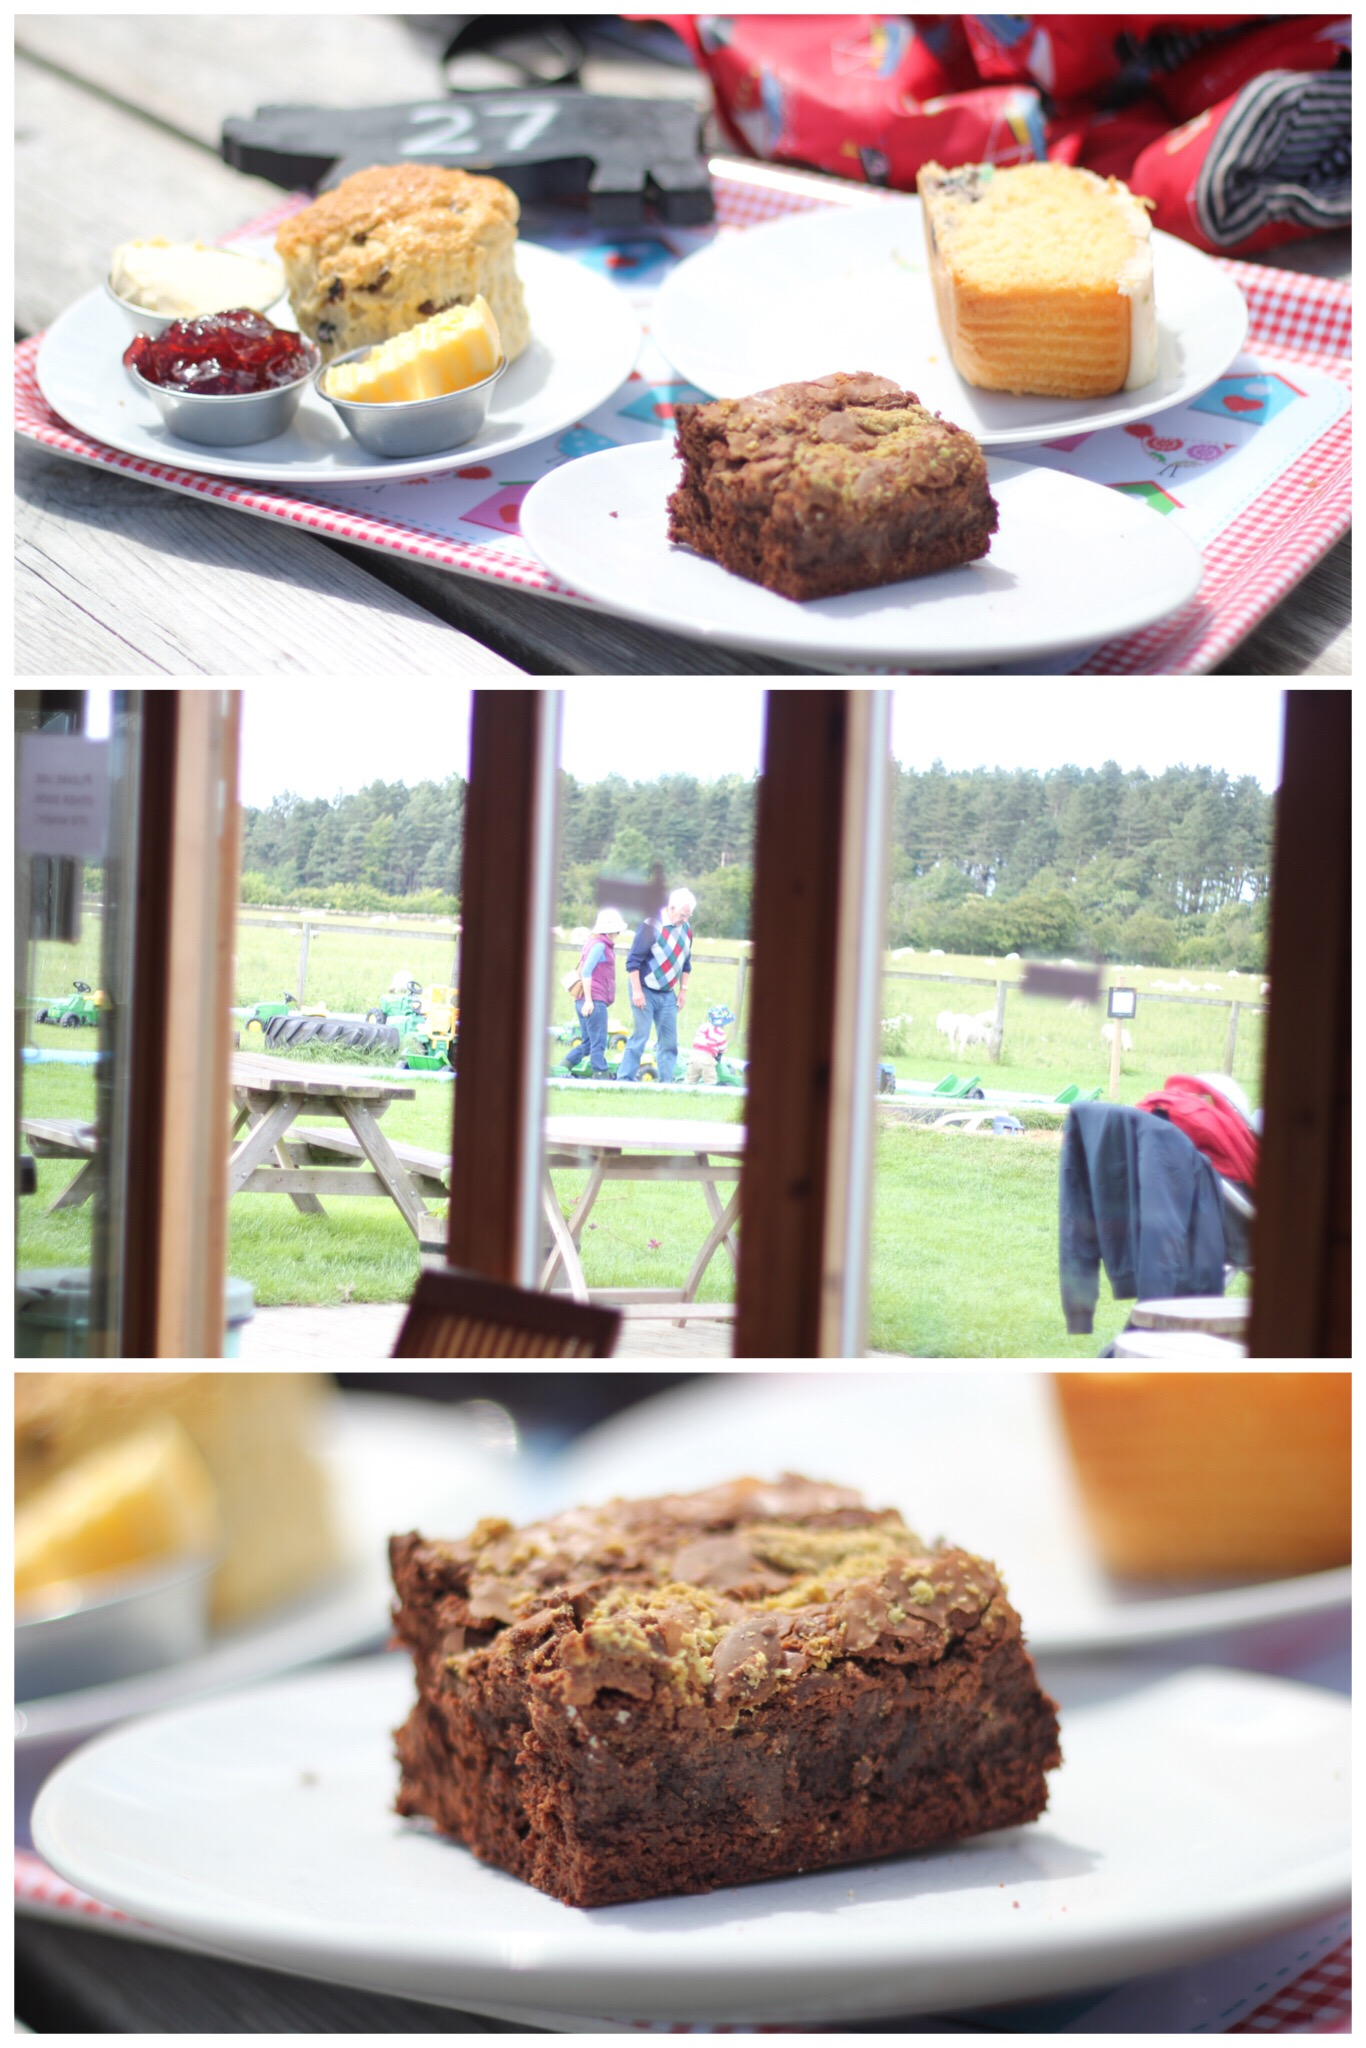 Broom House Farm Coffee Shop Play Equipment Children Sprog on the Tyne Cake Scones